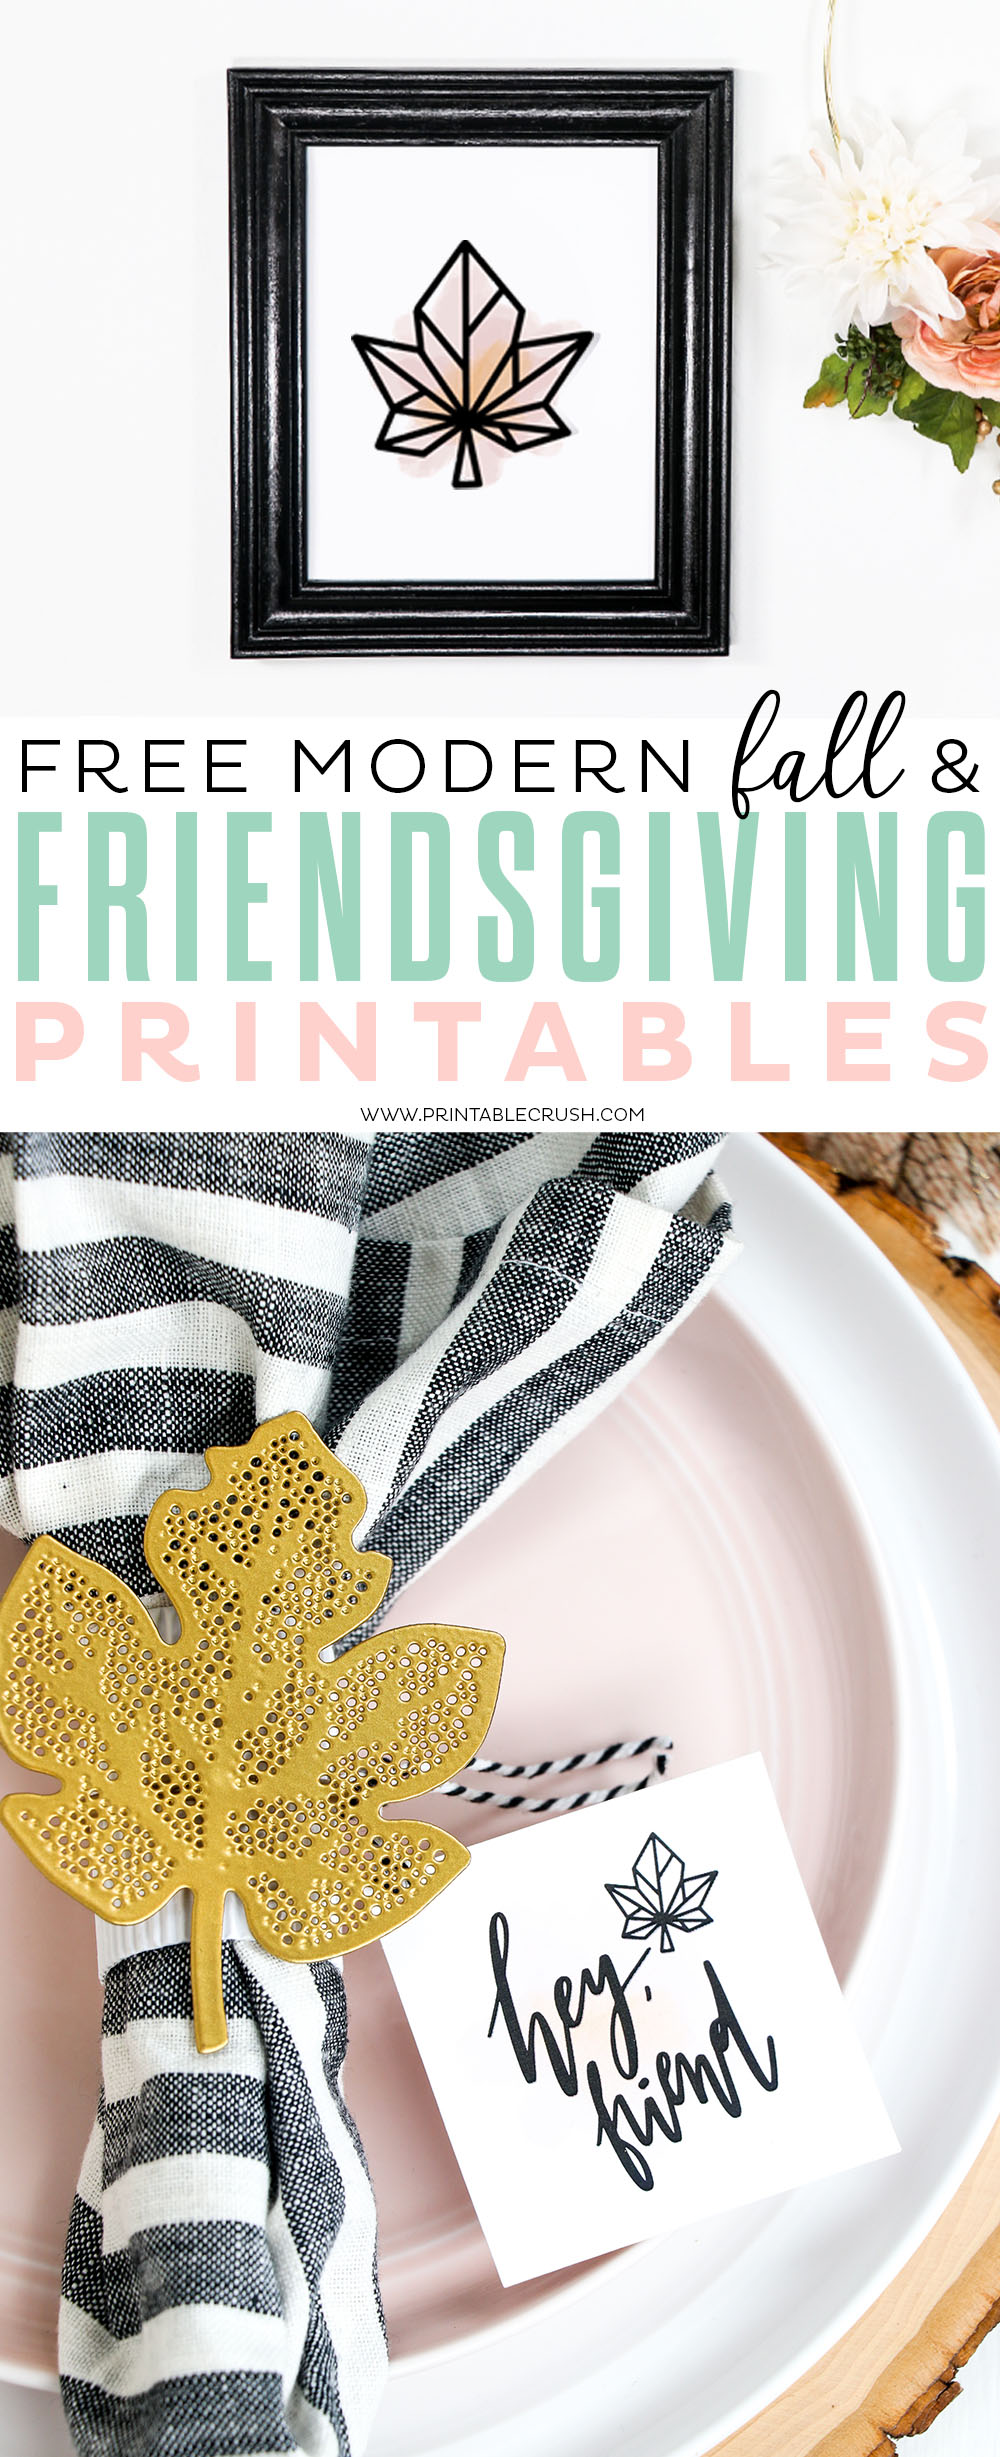 Downlaod these Free Fall and Friendsgiving Printables for your Modern Fall Home Decor or Friendsgiving party.